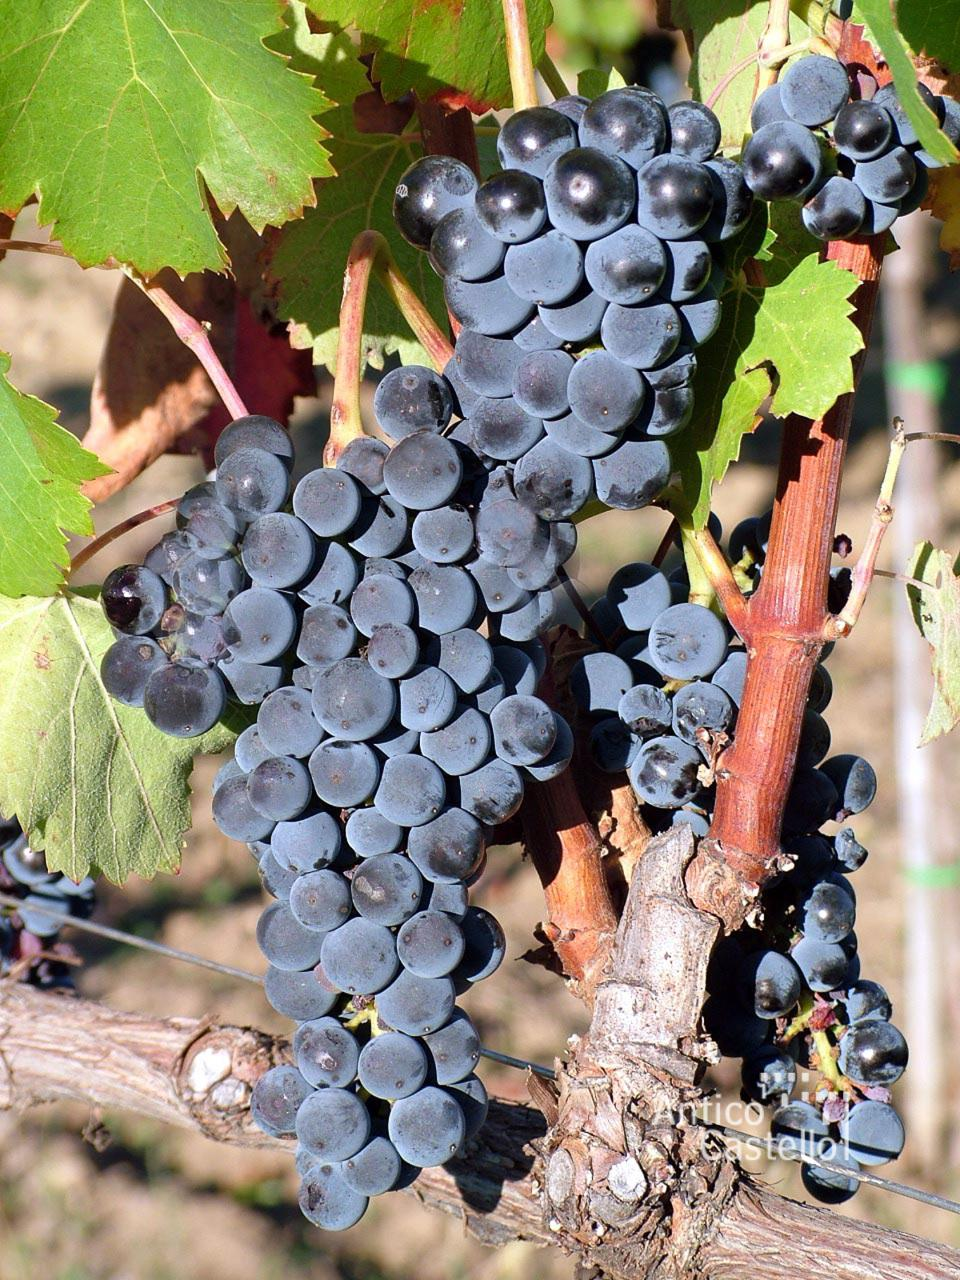 Bringing Engineering To Volcanic Wines In Campania, Italy